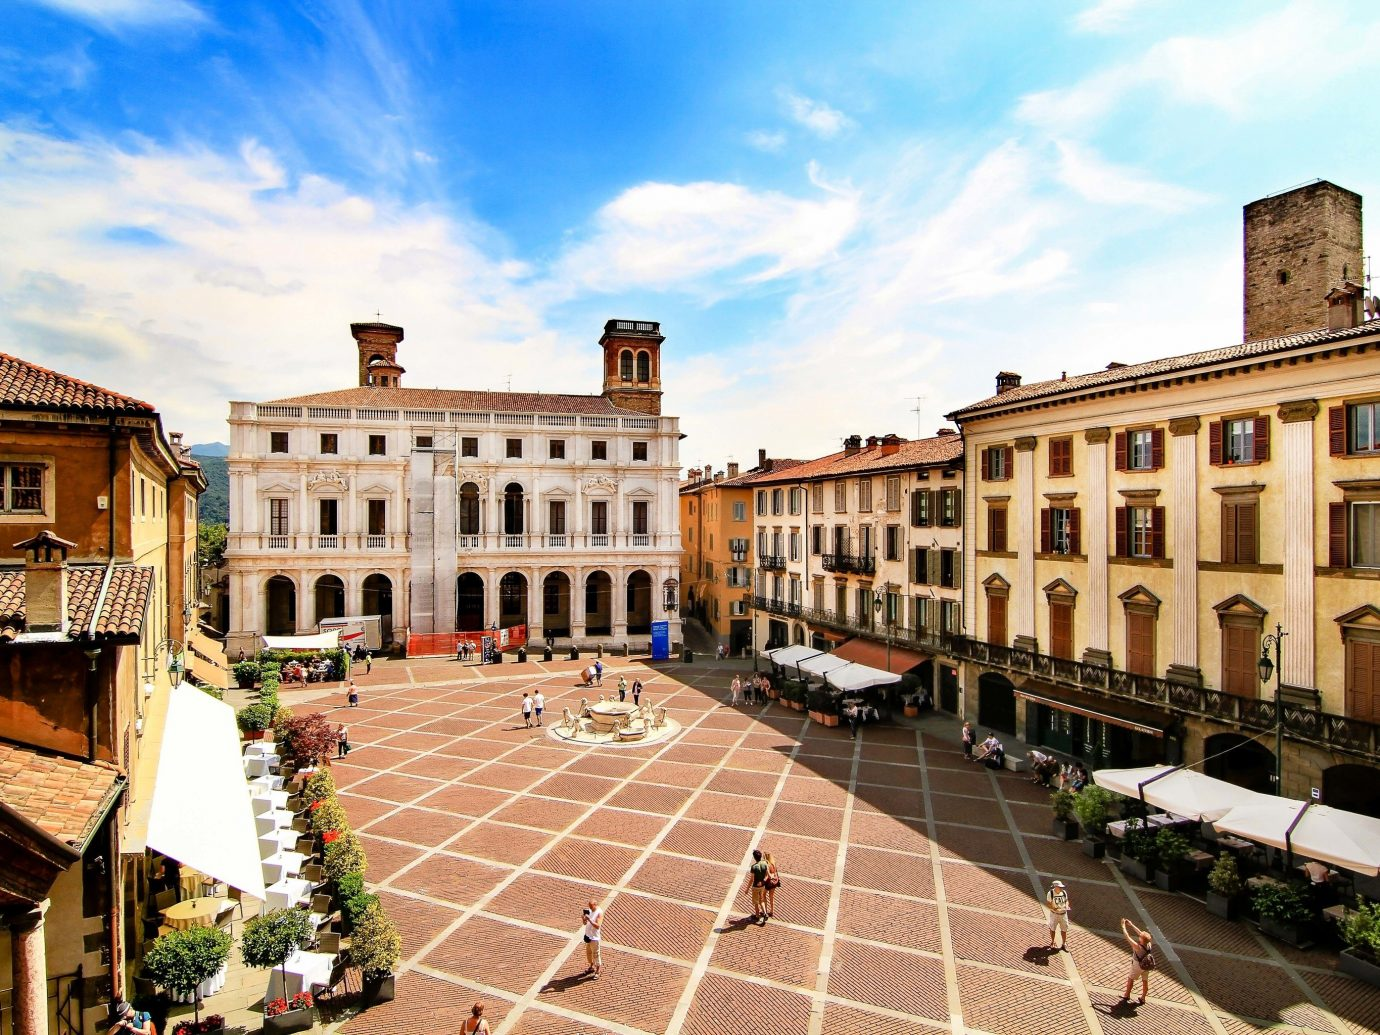 europe Italy Off-the-beaten Path Trip Ideas landmark Town property City sky plaza town square building neighbourhood historic site estate residential area real estate apartment facade tourism house ancient rome mansion window stately home roof